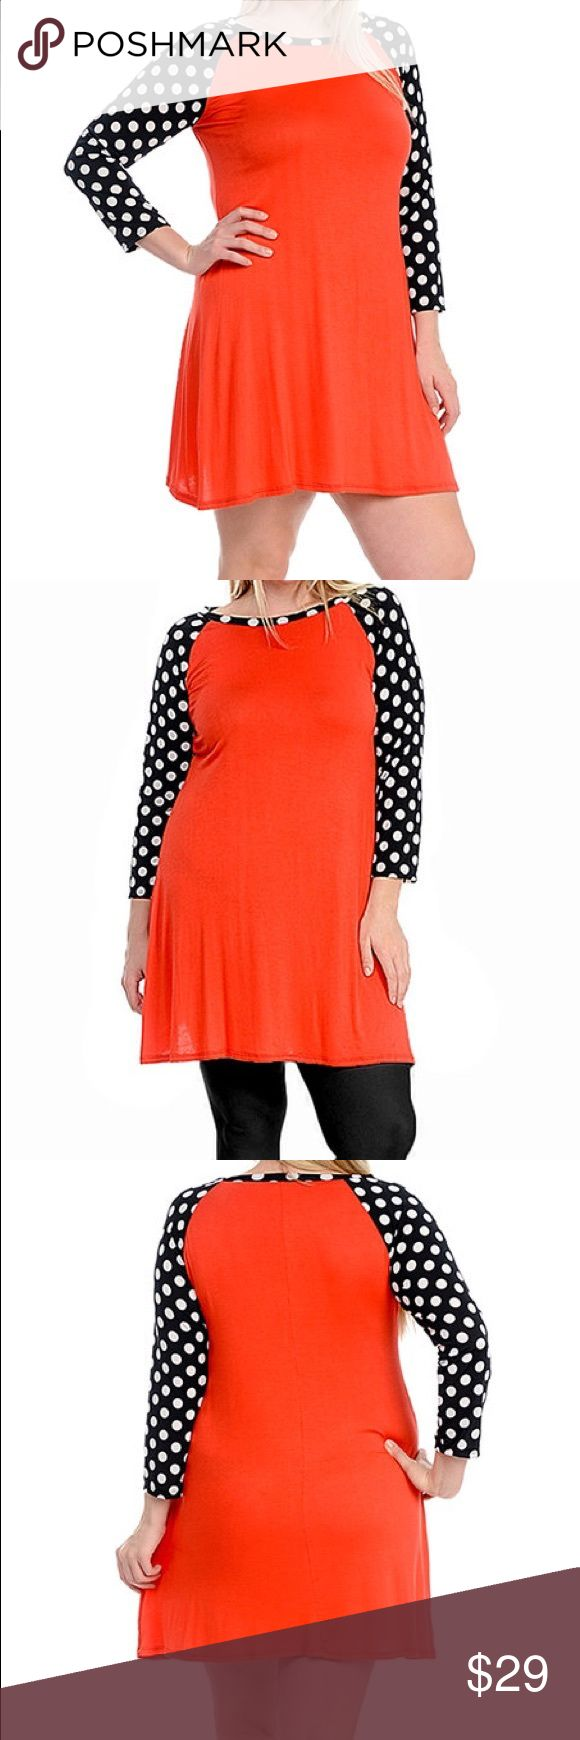 Red Polka Dot Swing Tunic Dress Plus Size 1XL A subtle swing cut flatters your figure in this simple tunic dress. Playful polka dots refresh the sleeves and neckline with playful energy and eye-catching contrast.  Size 1X: 36'' long from high point of shoulder to hem. Looks more red than in the stock photo. See other photos. Celeste Dresses Midi